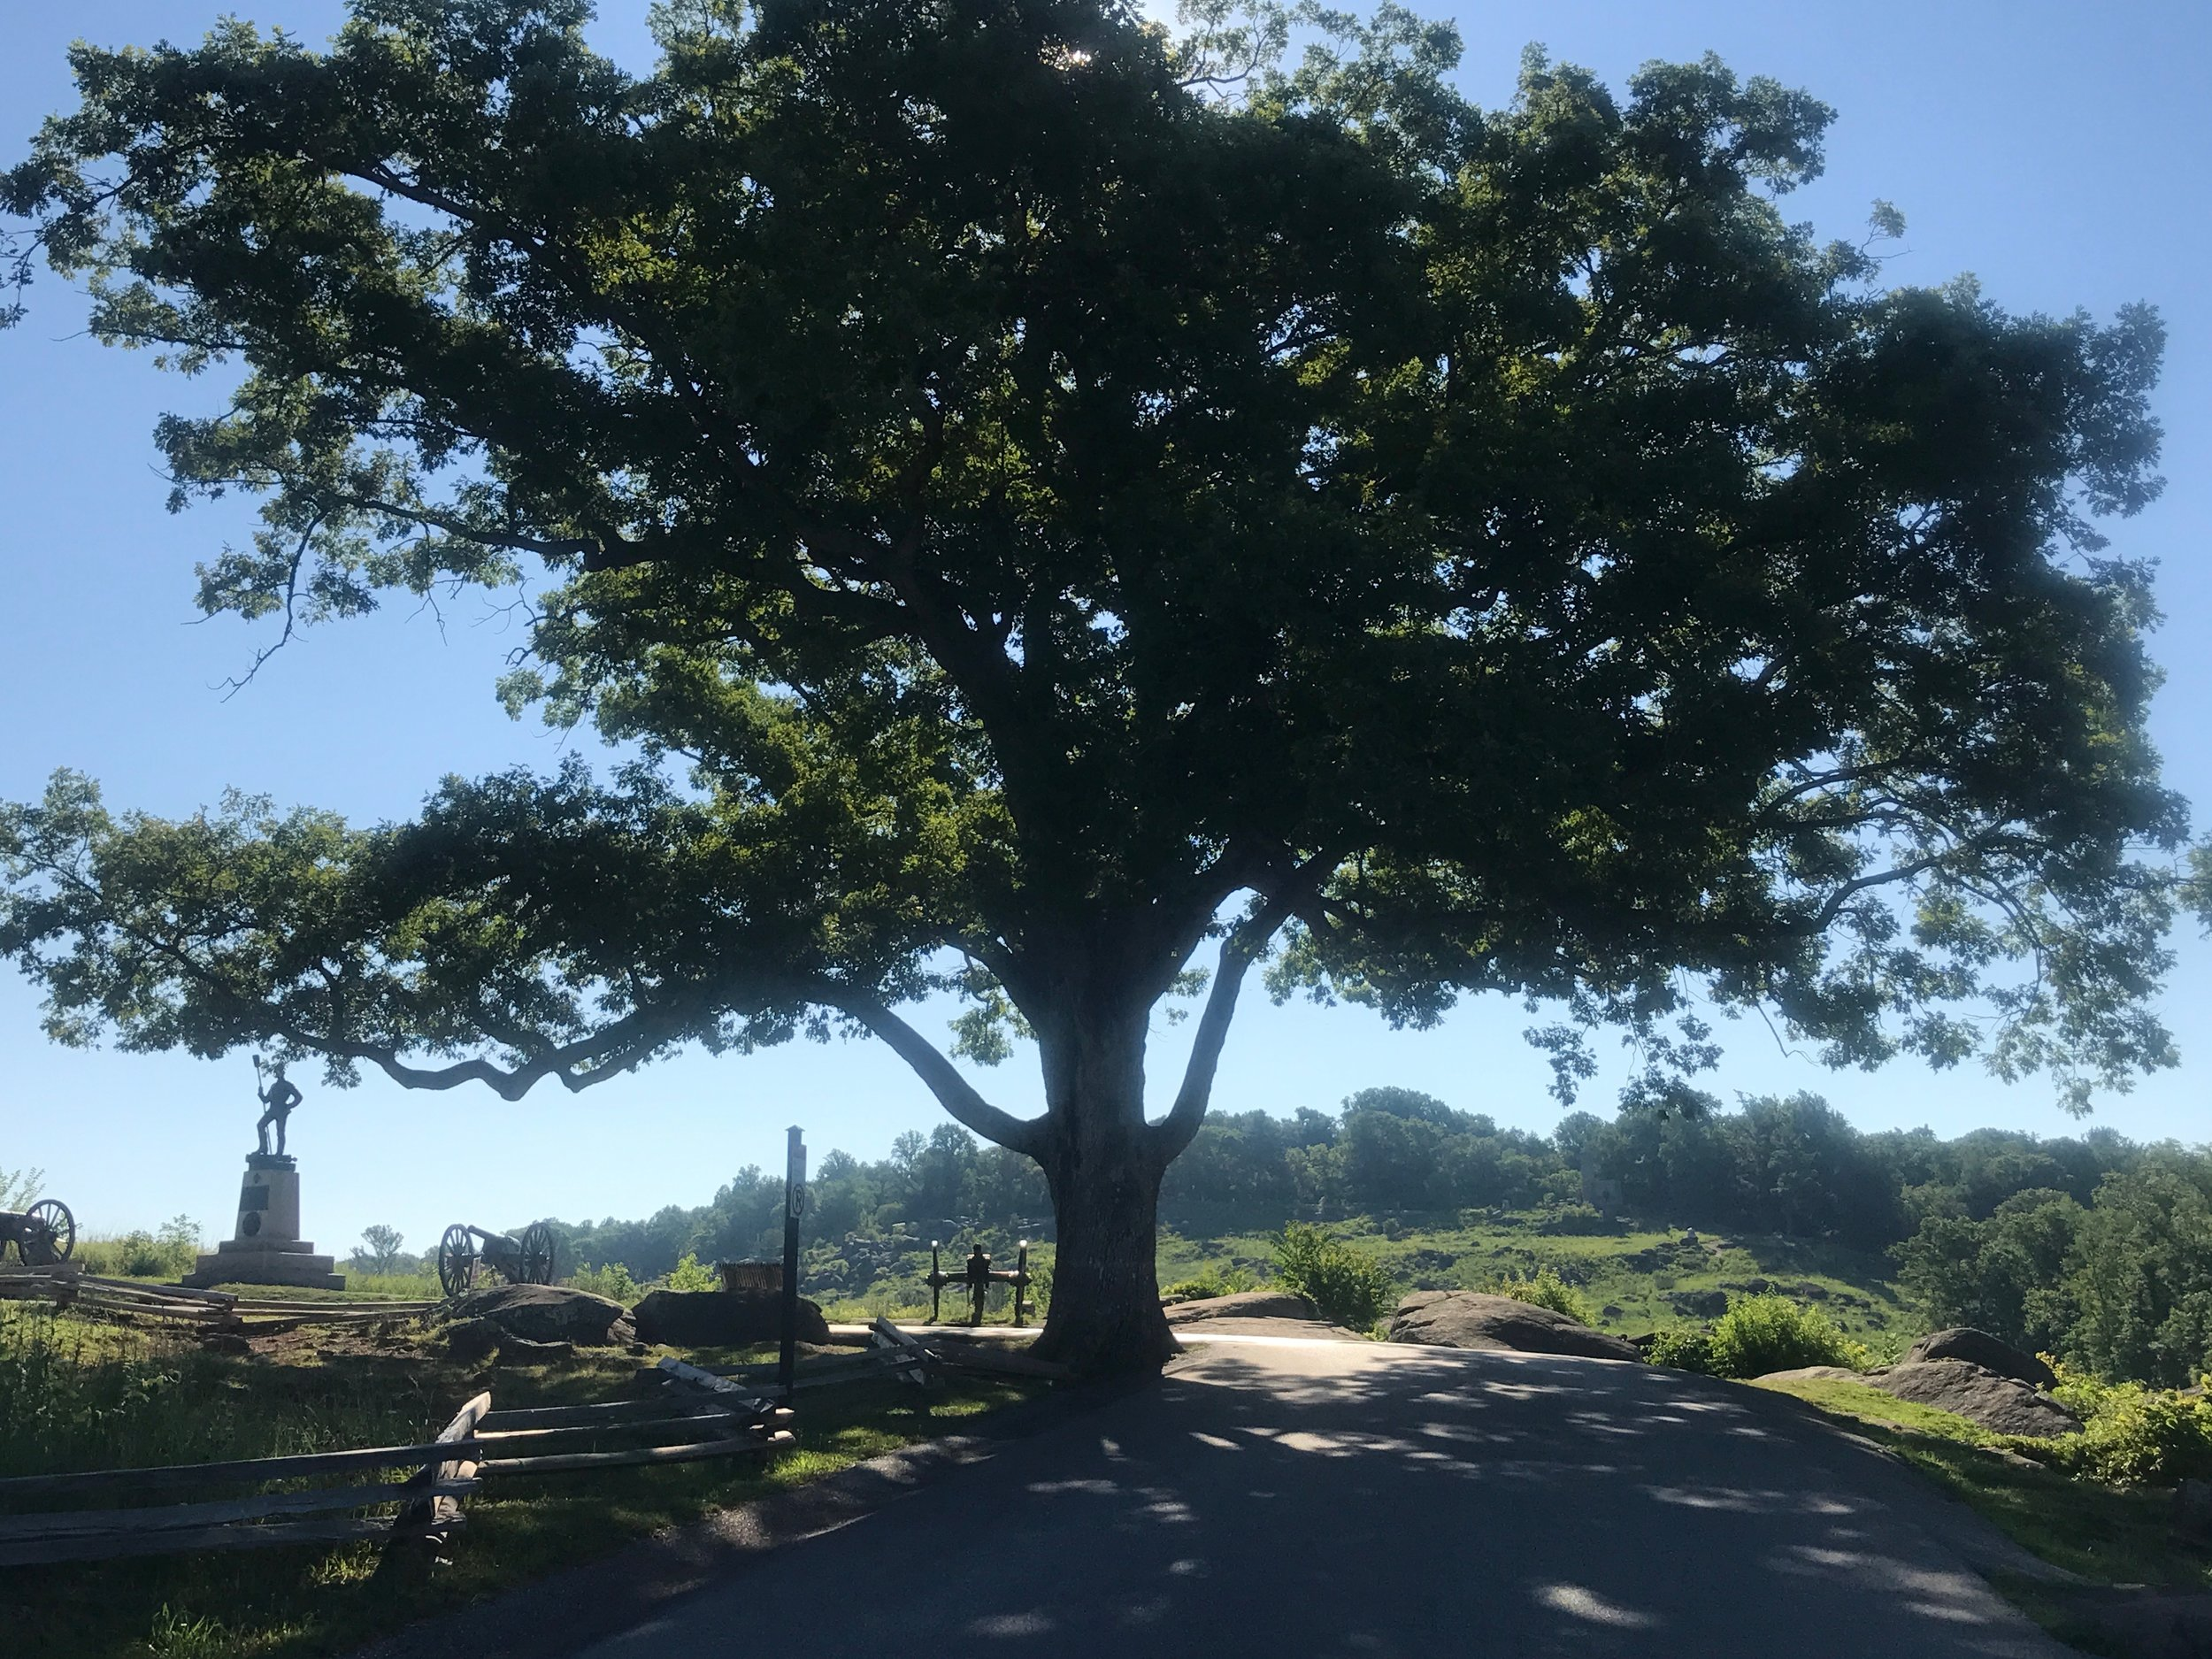 Another view of the Devil's Den witness tree